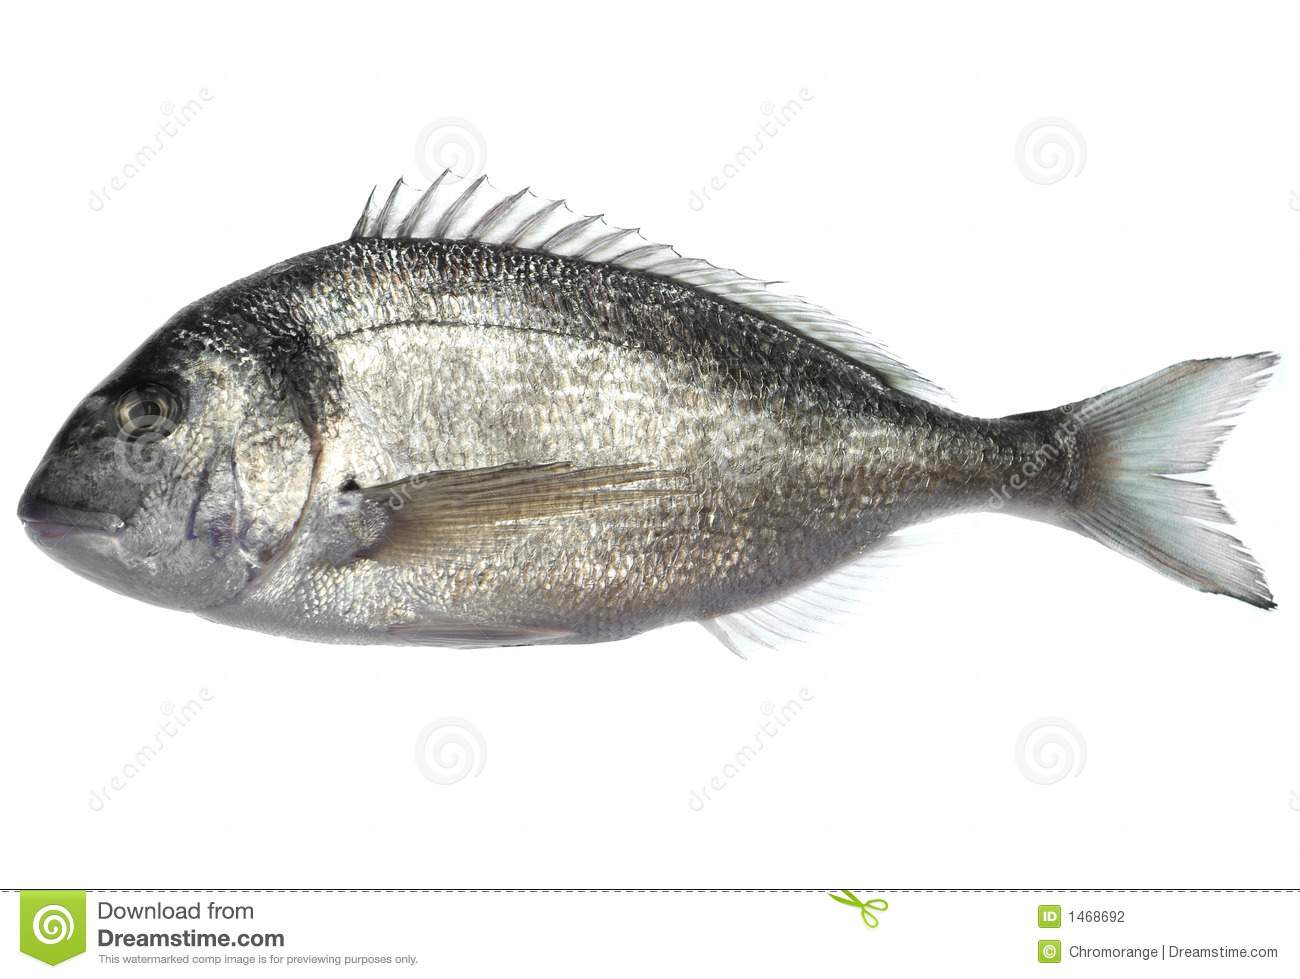 Dorade fish stock photo image of white auratus for Image of fish